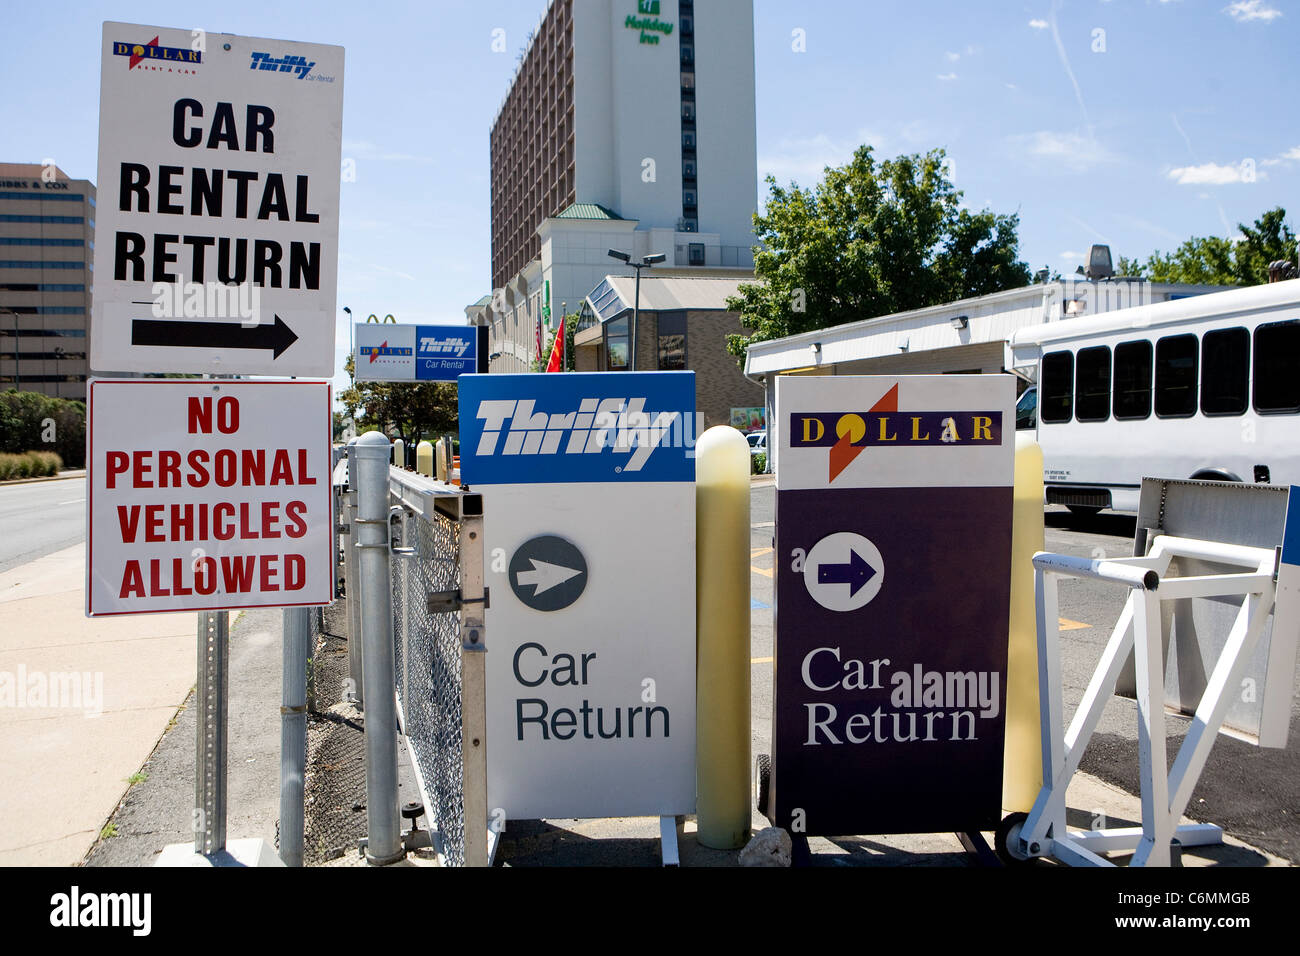 A Dollar Thrifty Car Rental center.  - Stock Image